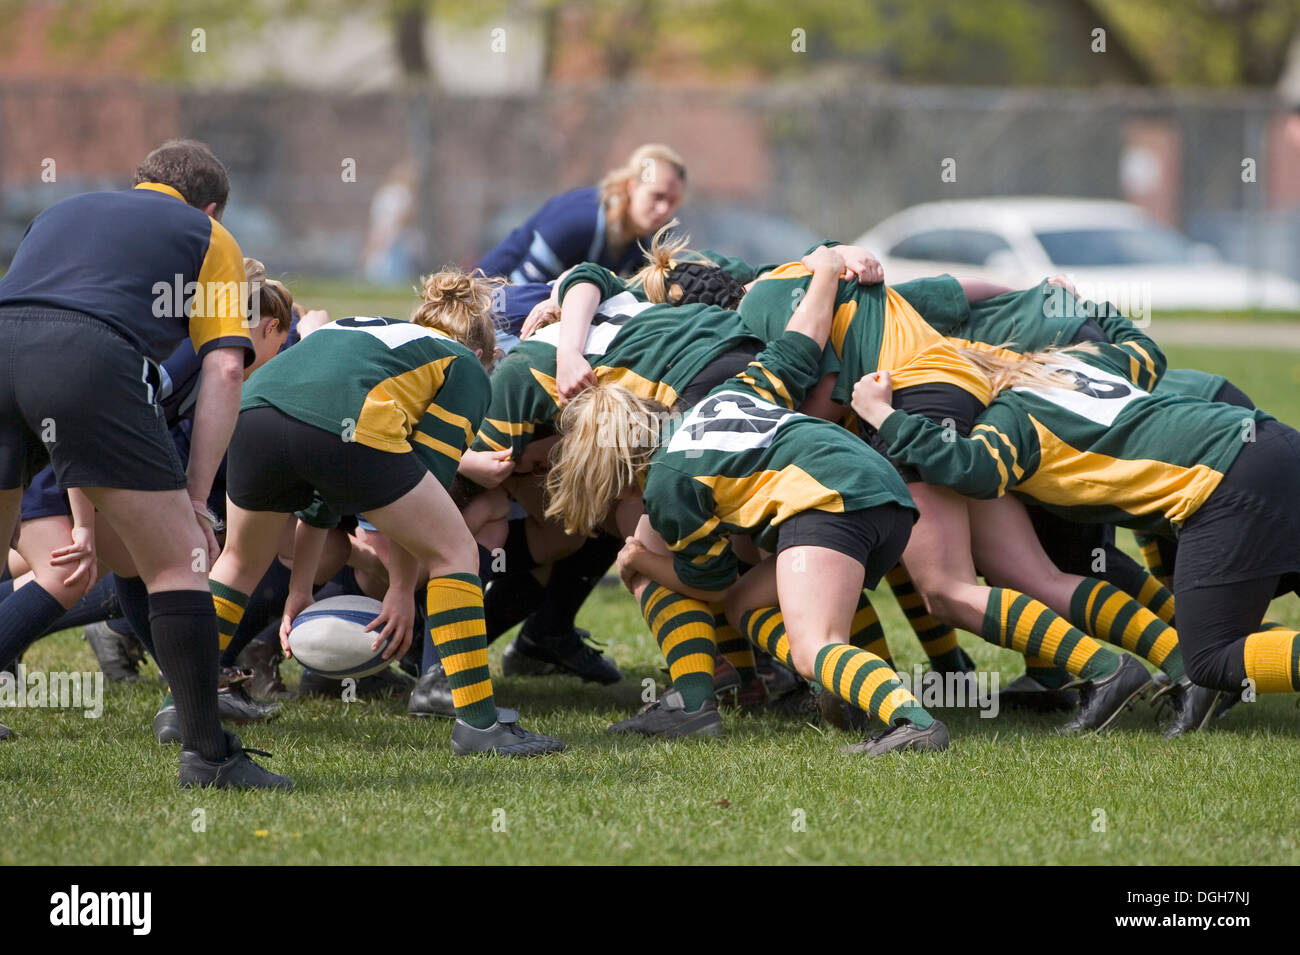 In rugby scrum Photo Stock